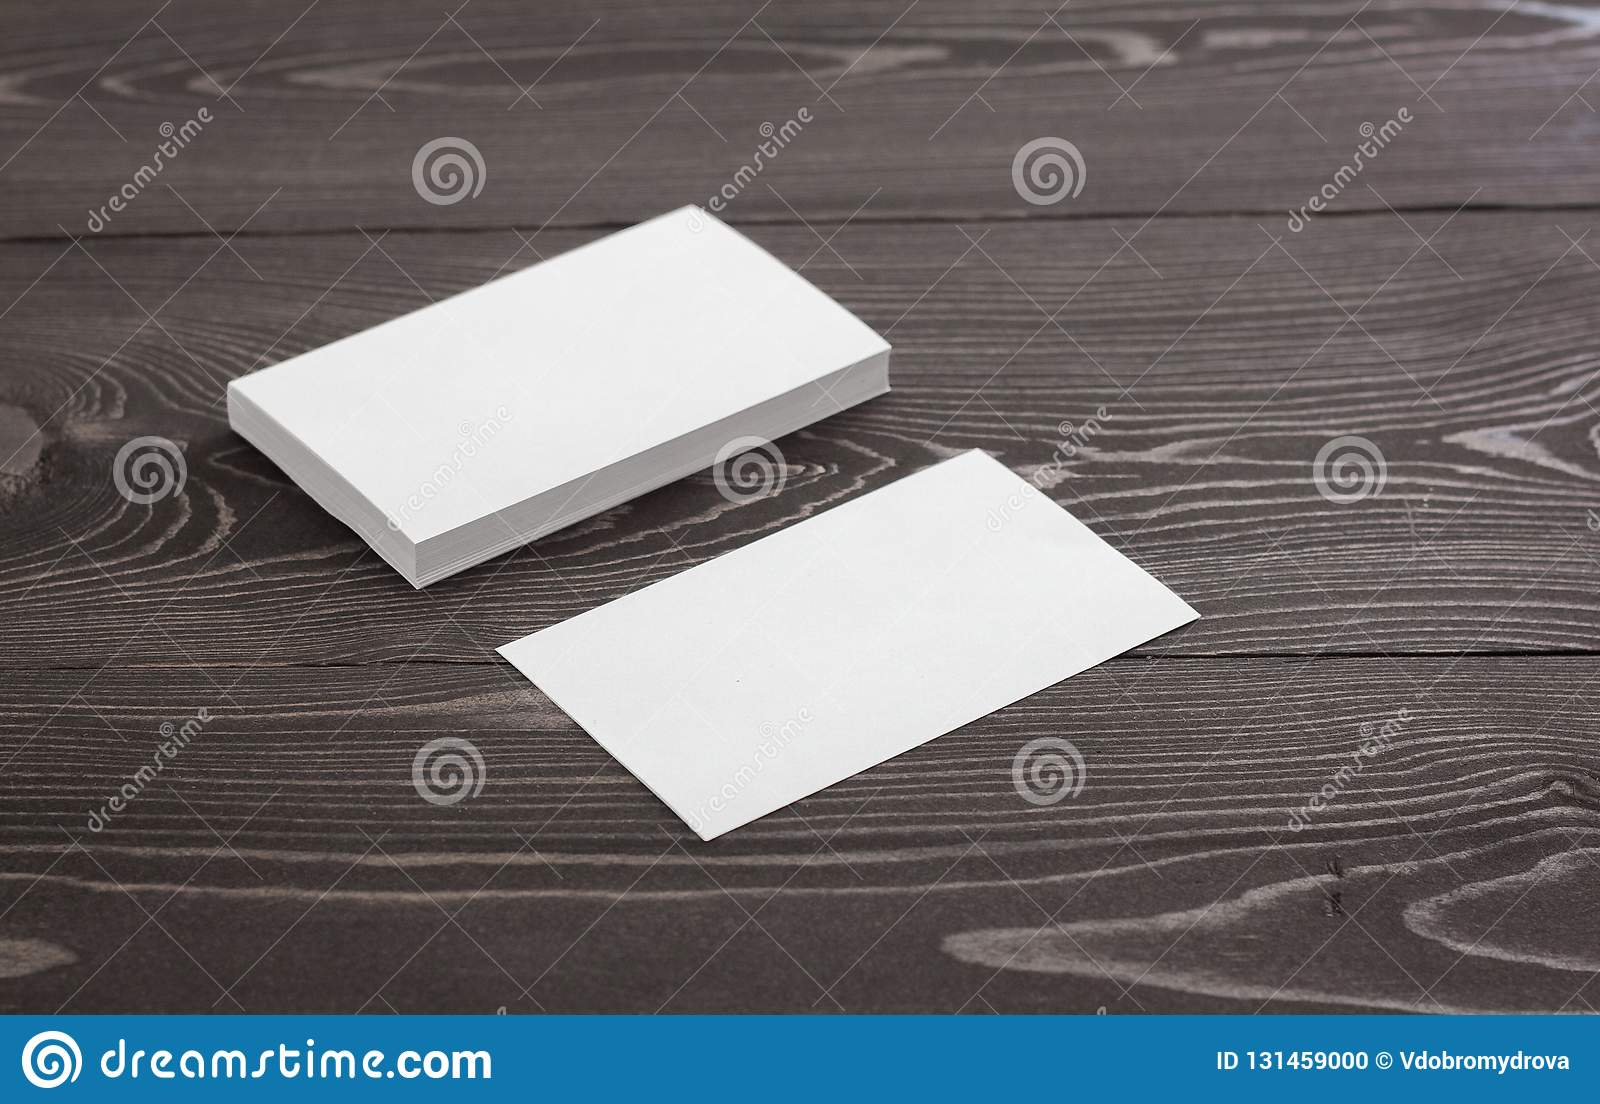 Mockup of business cards on a dark wood background. Template for branding identity